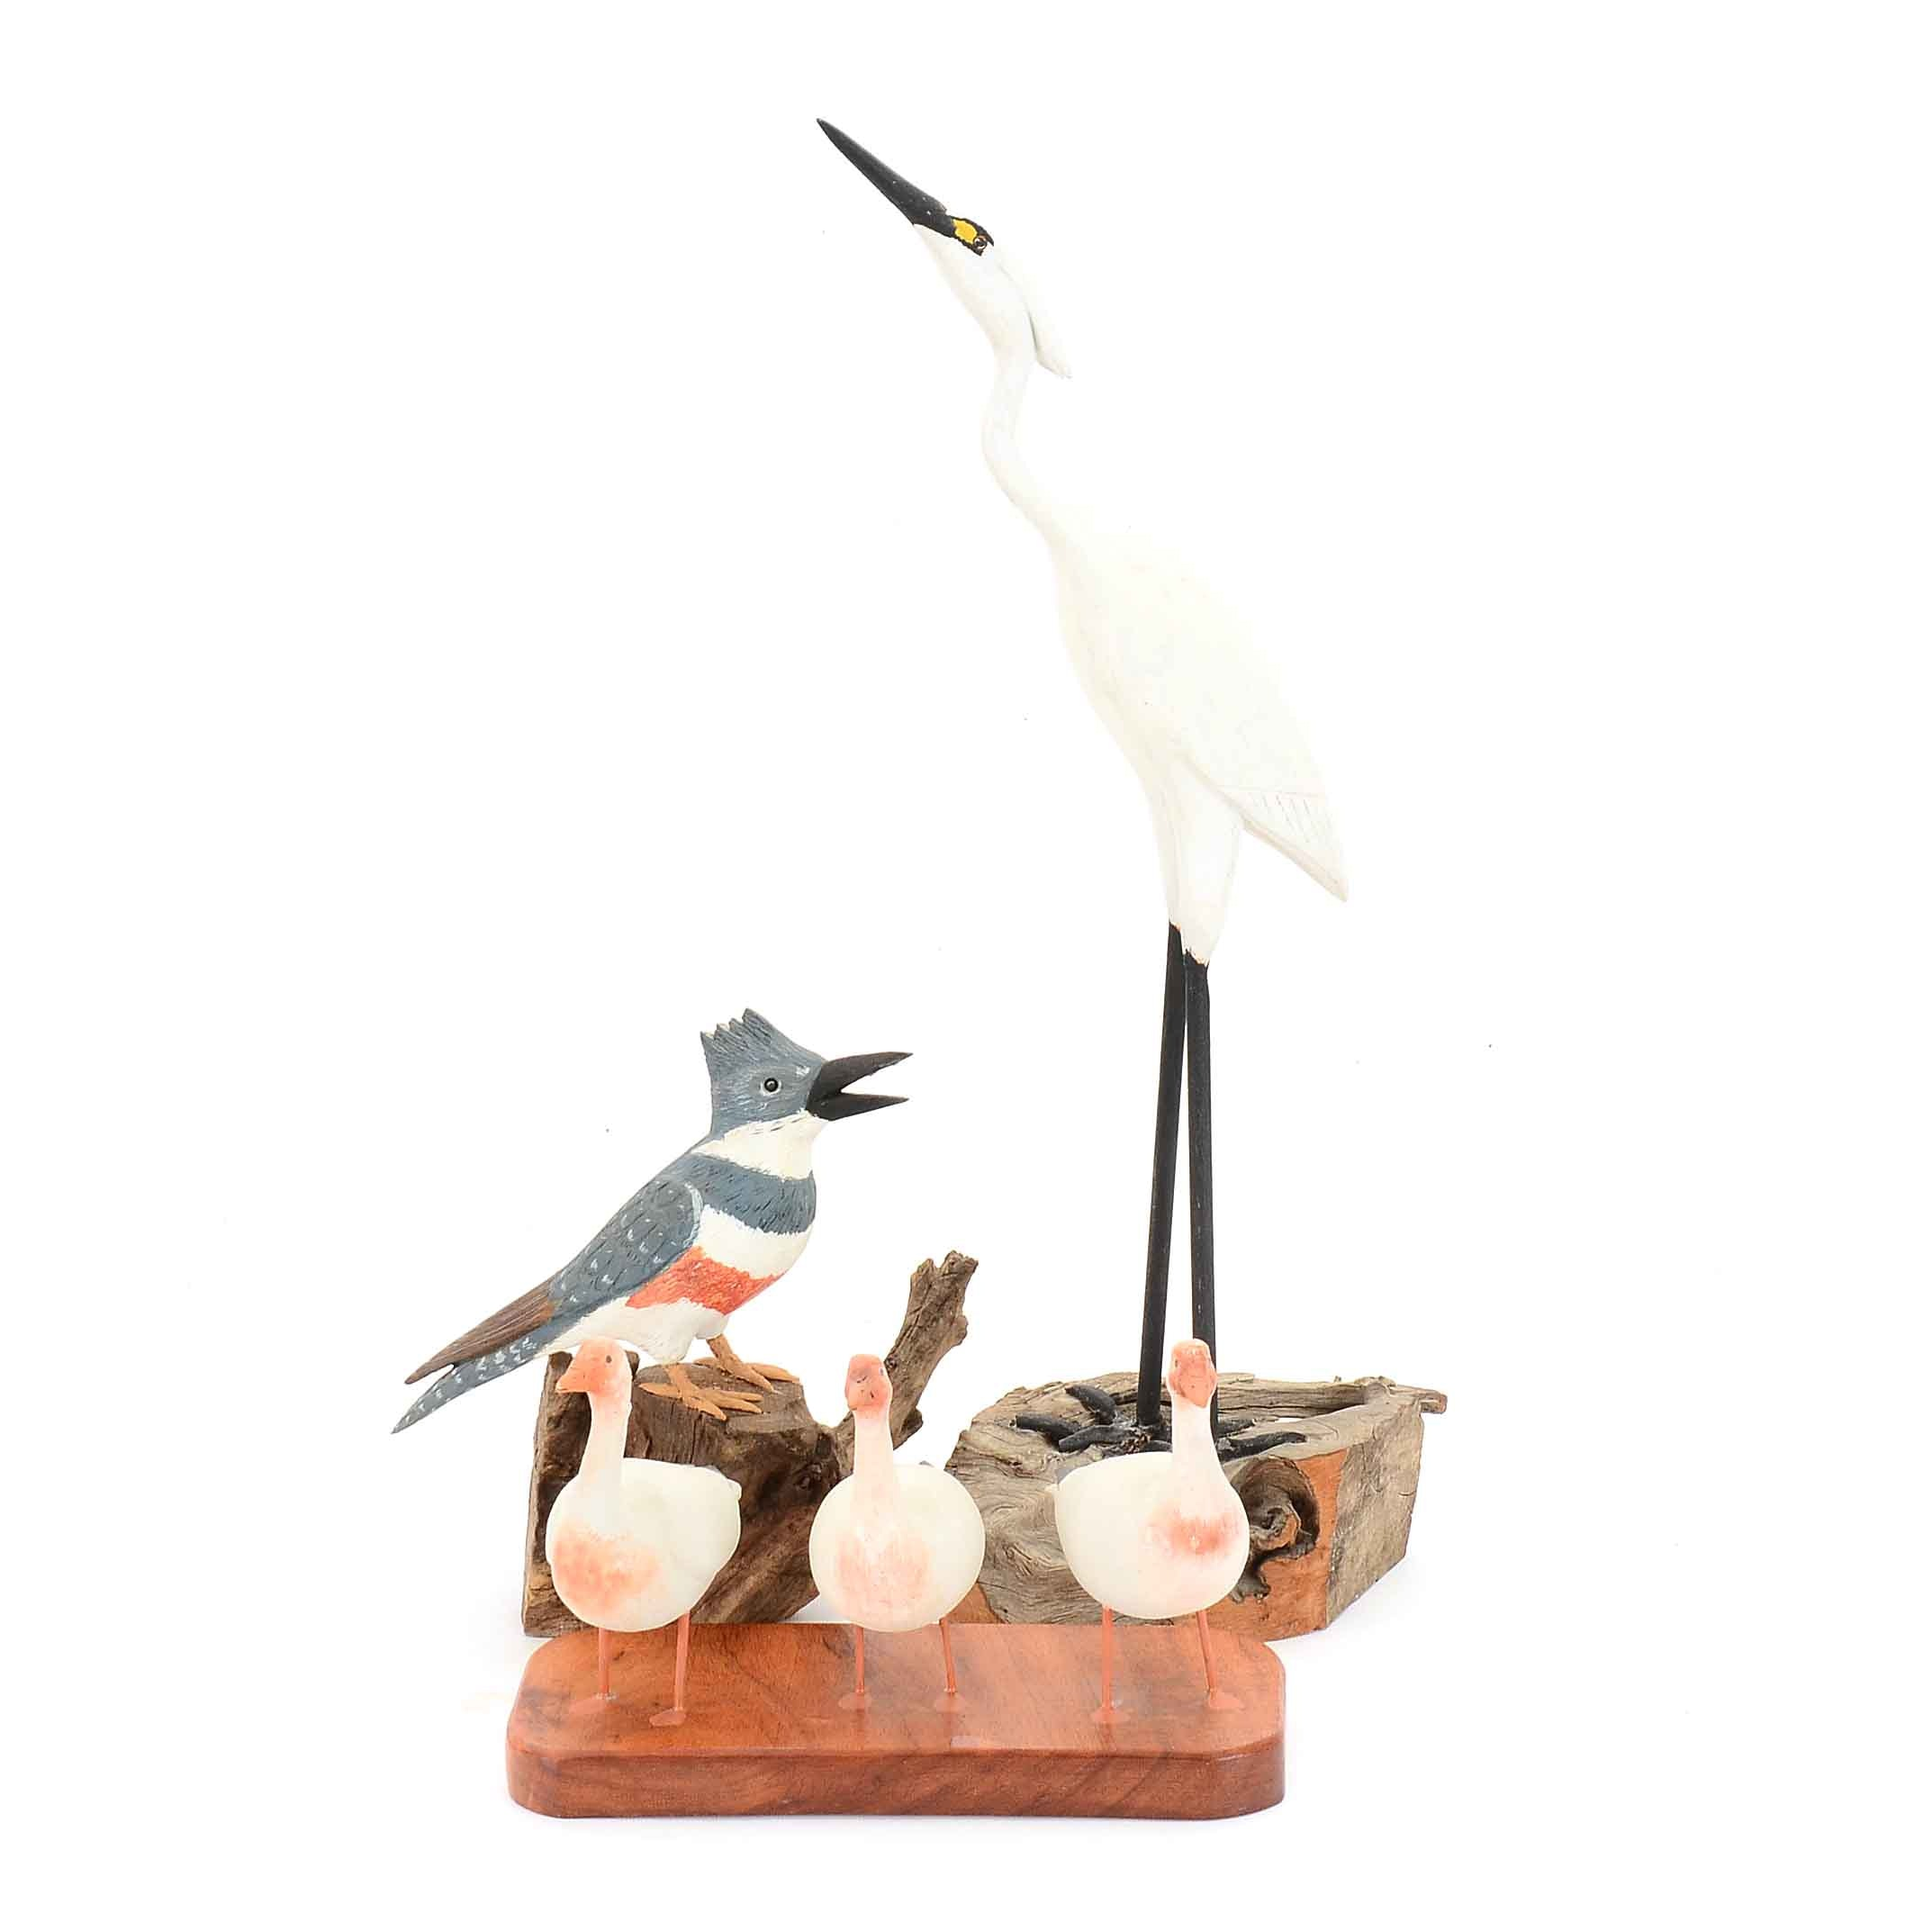 Carved Wooden Hand-Painted Bird Sculptures, Featuring Eugene Ownby